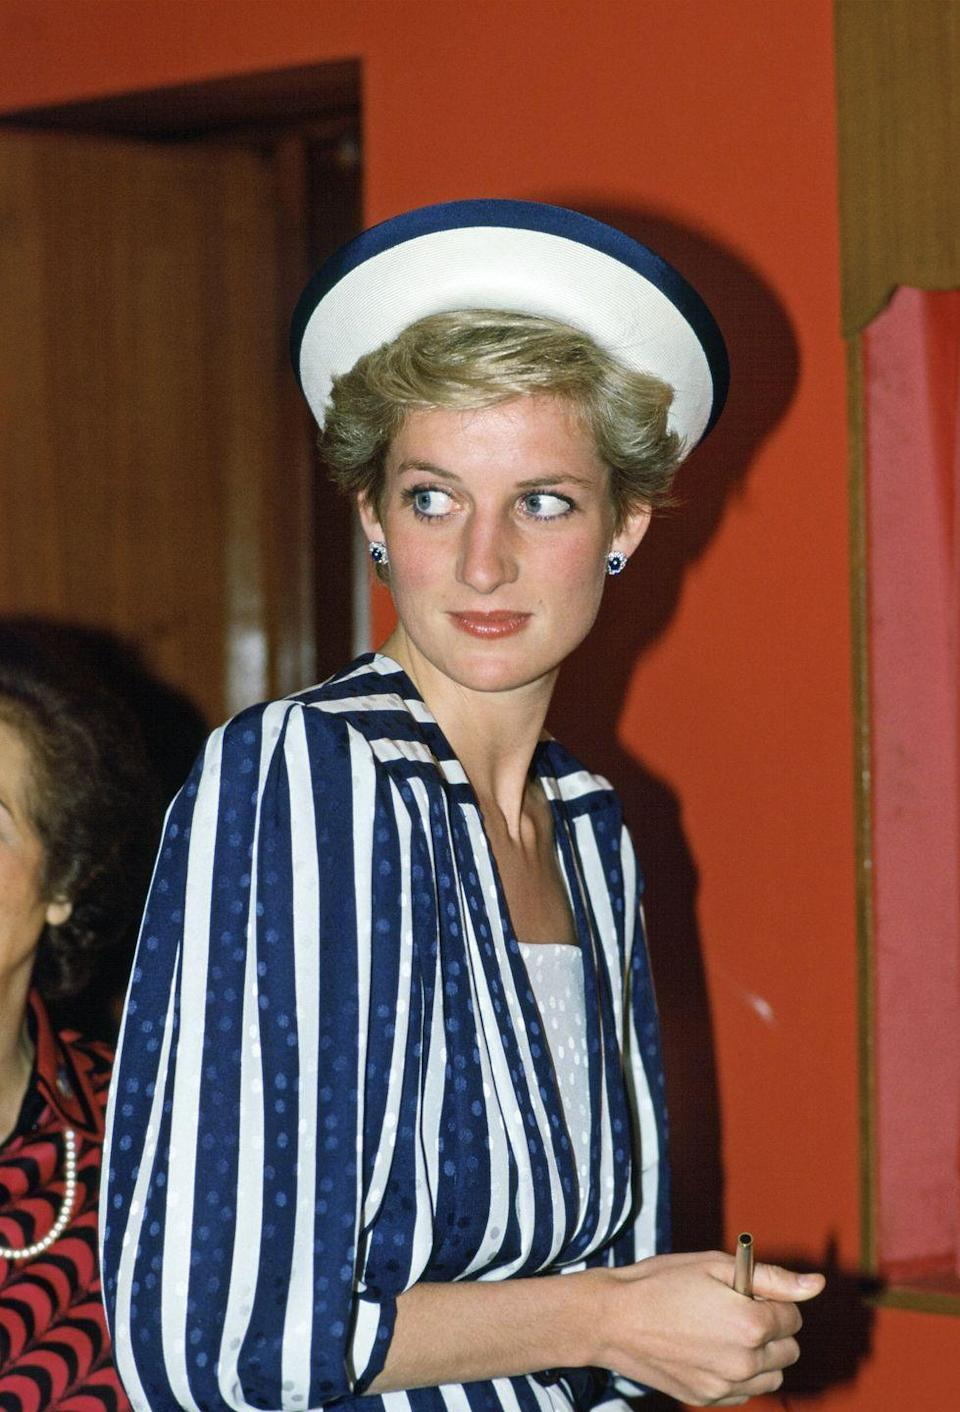 <p>During an official visit to Bahrain, Princess Diana wore a nautical-inspired look, featuring a navy and white striped dress and matching hat. </p>